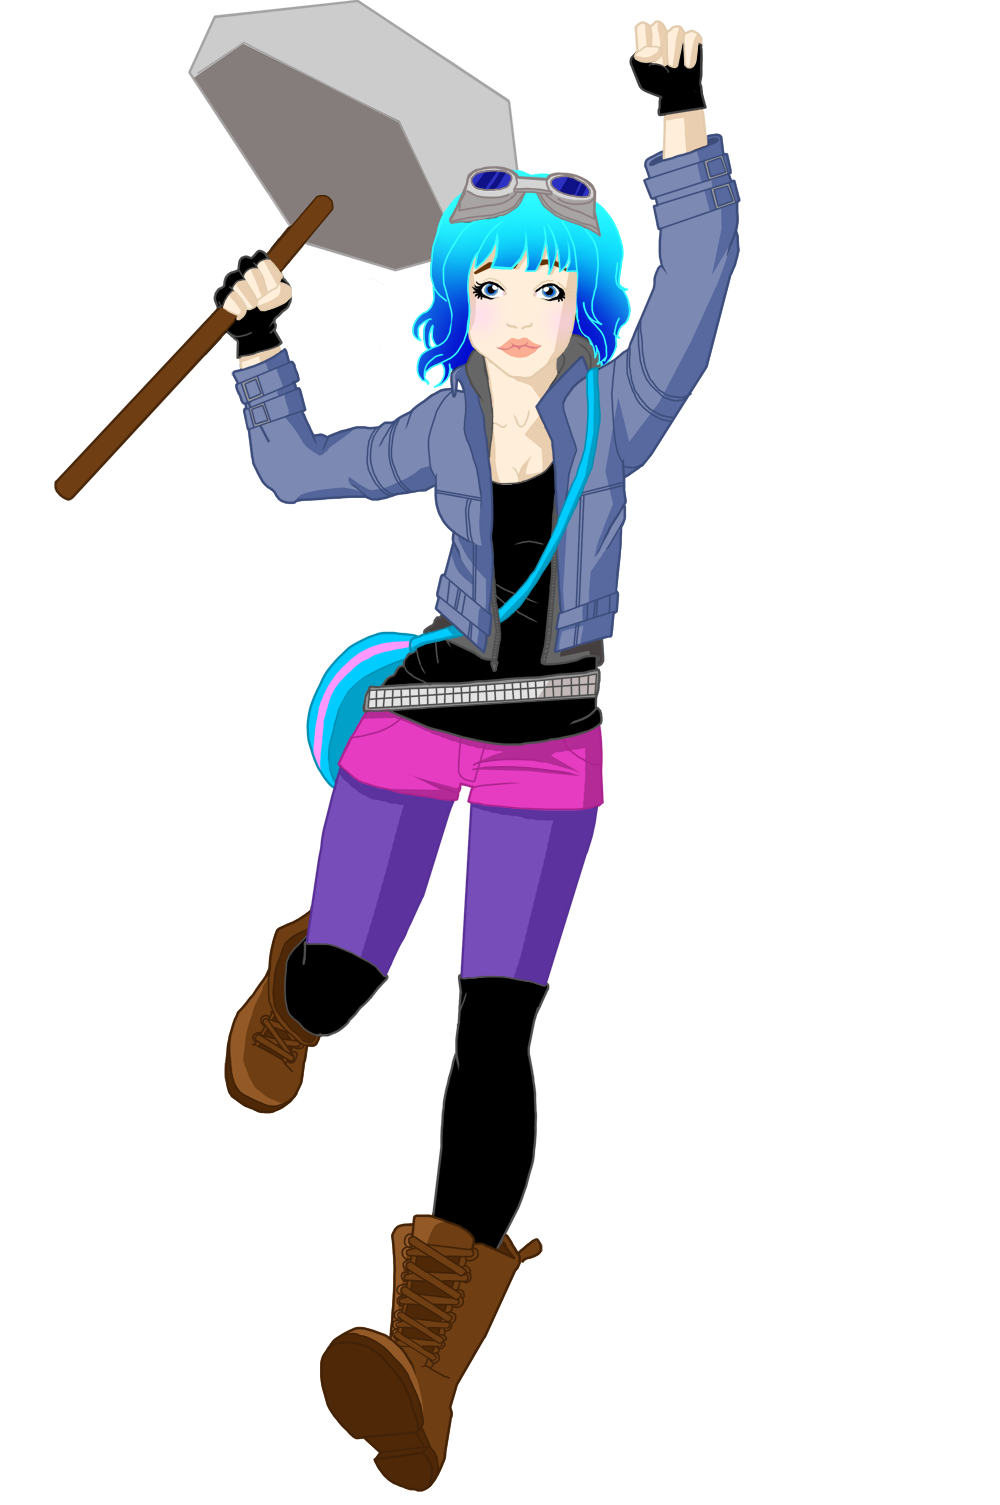 Ramona Flowers, from Scott Pilgrim